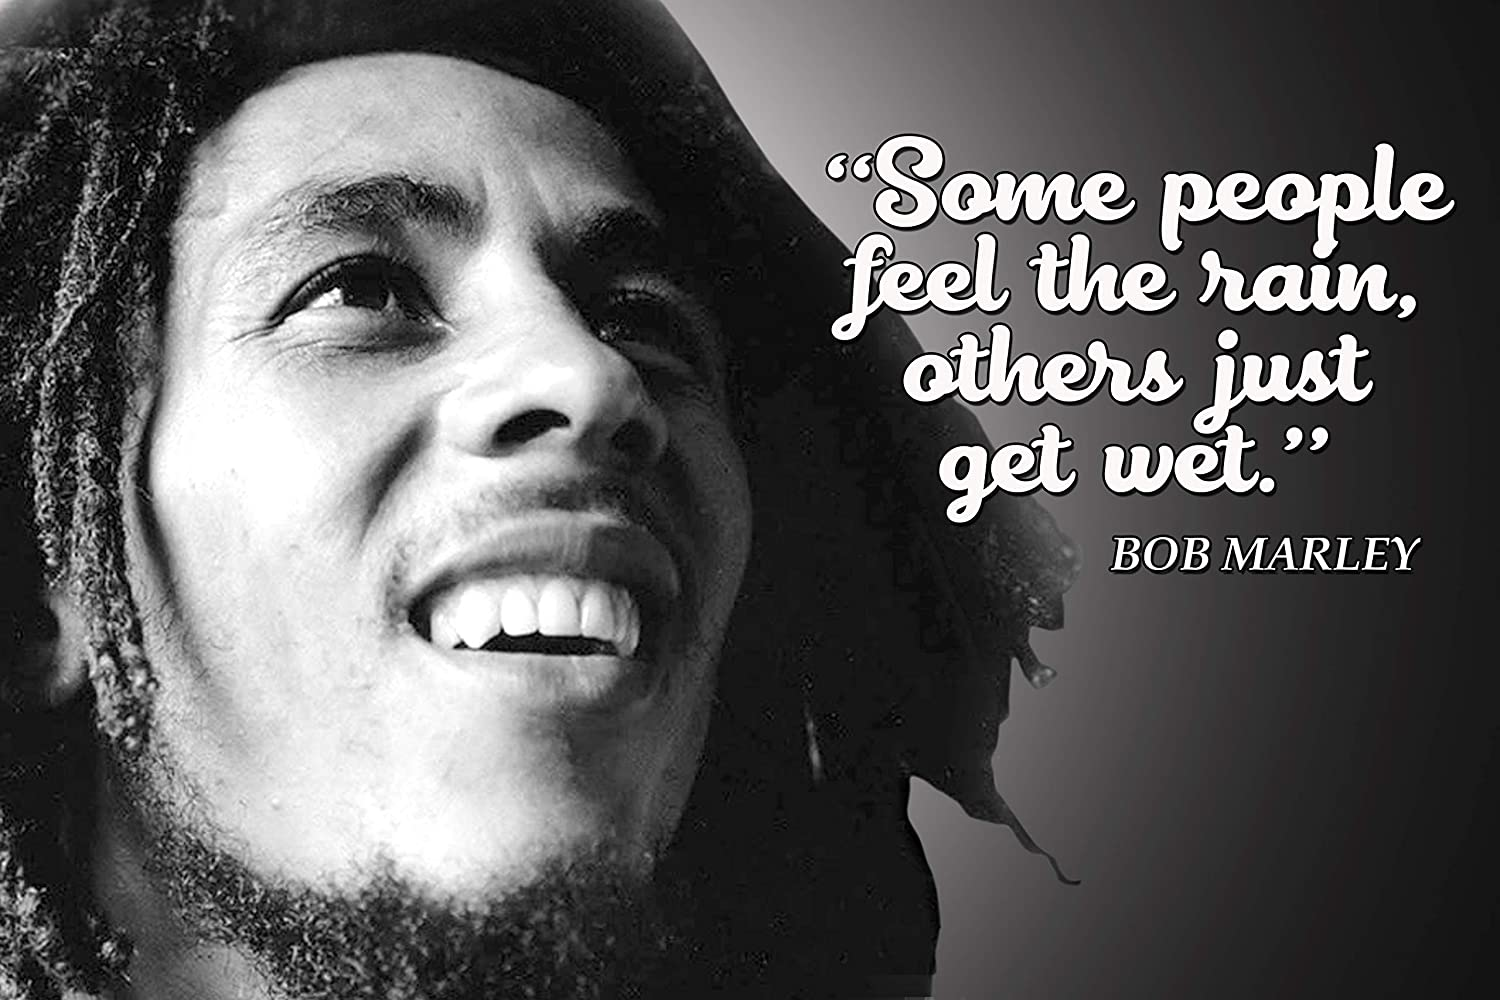 Bob Marley Quote Posters For Classroom Black History Month Poster Decorations School Classrooms Wall Art Decor Teaching Supplies Inspirational